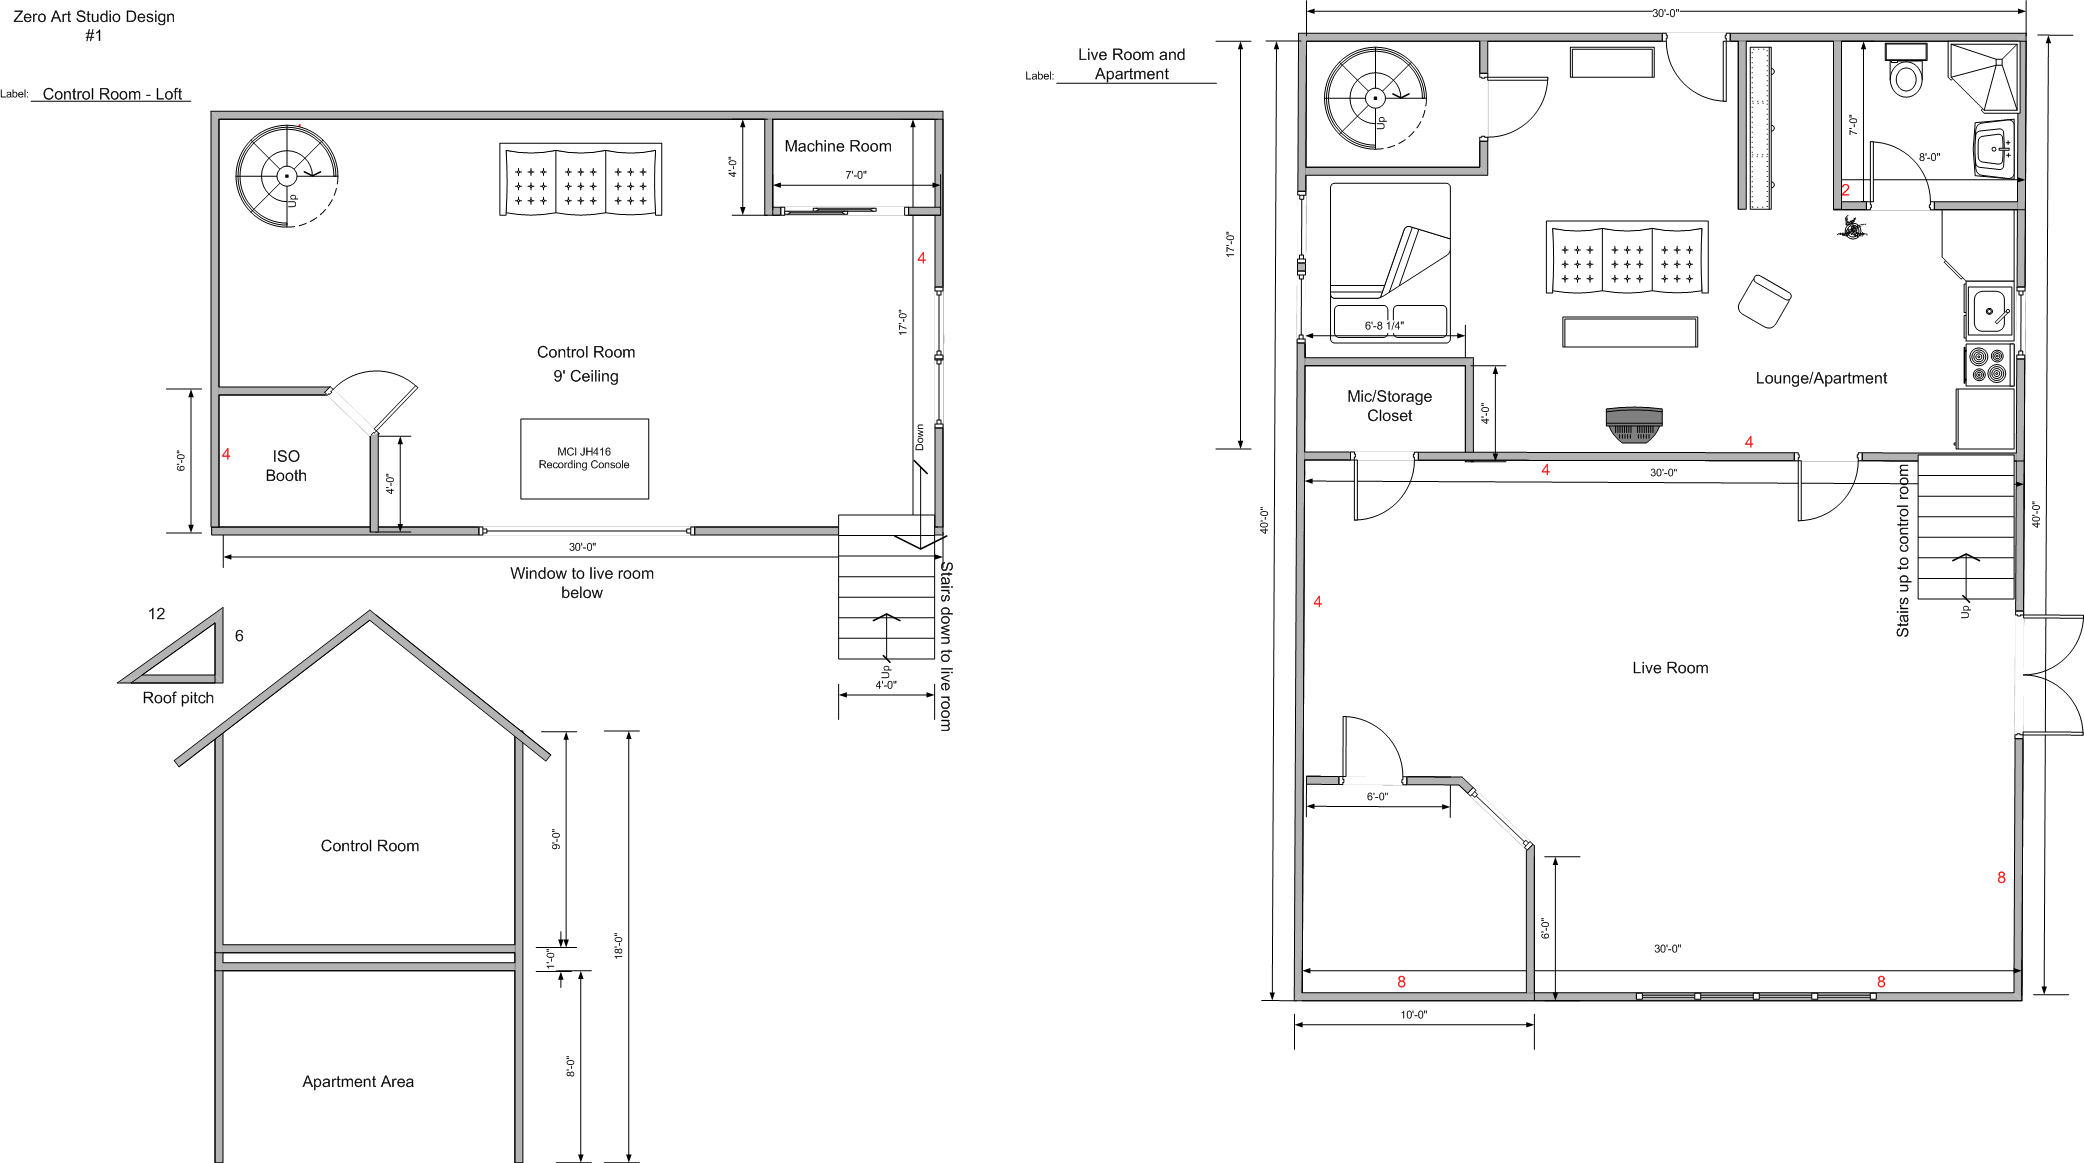 Zero art studio final floor plan tate eskew for Studio layout plan